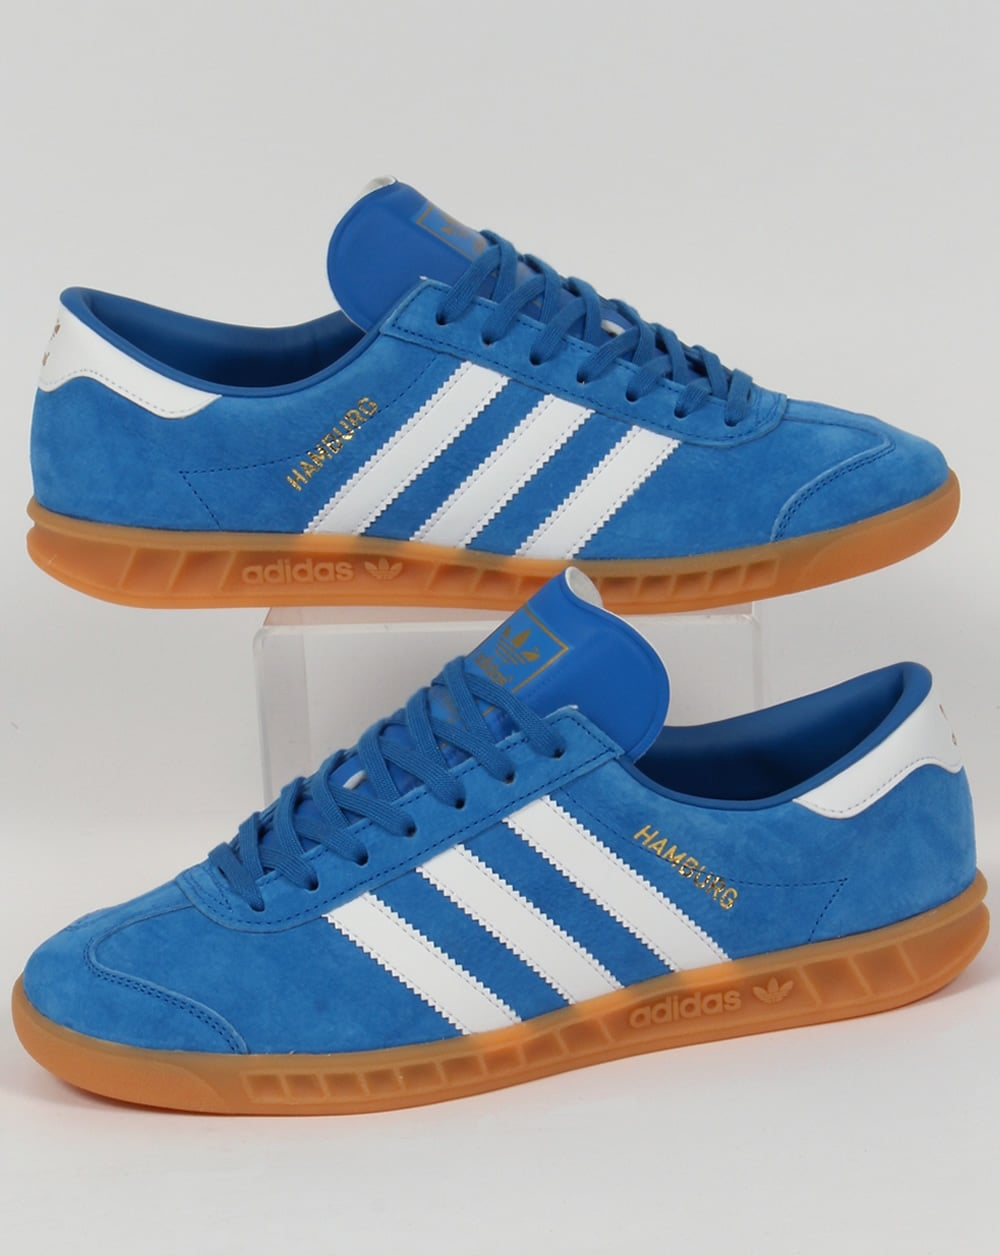 93f33e1533b6 adidas Trainers Adidas Hamburg Trainers Bluebird Blue White